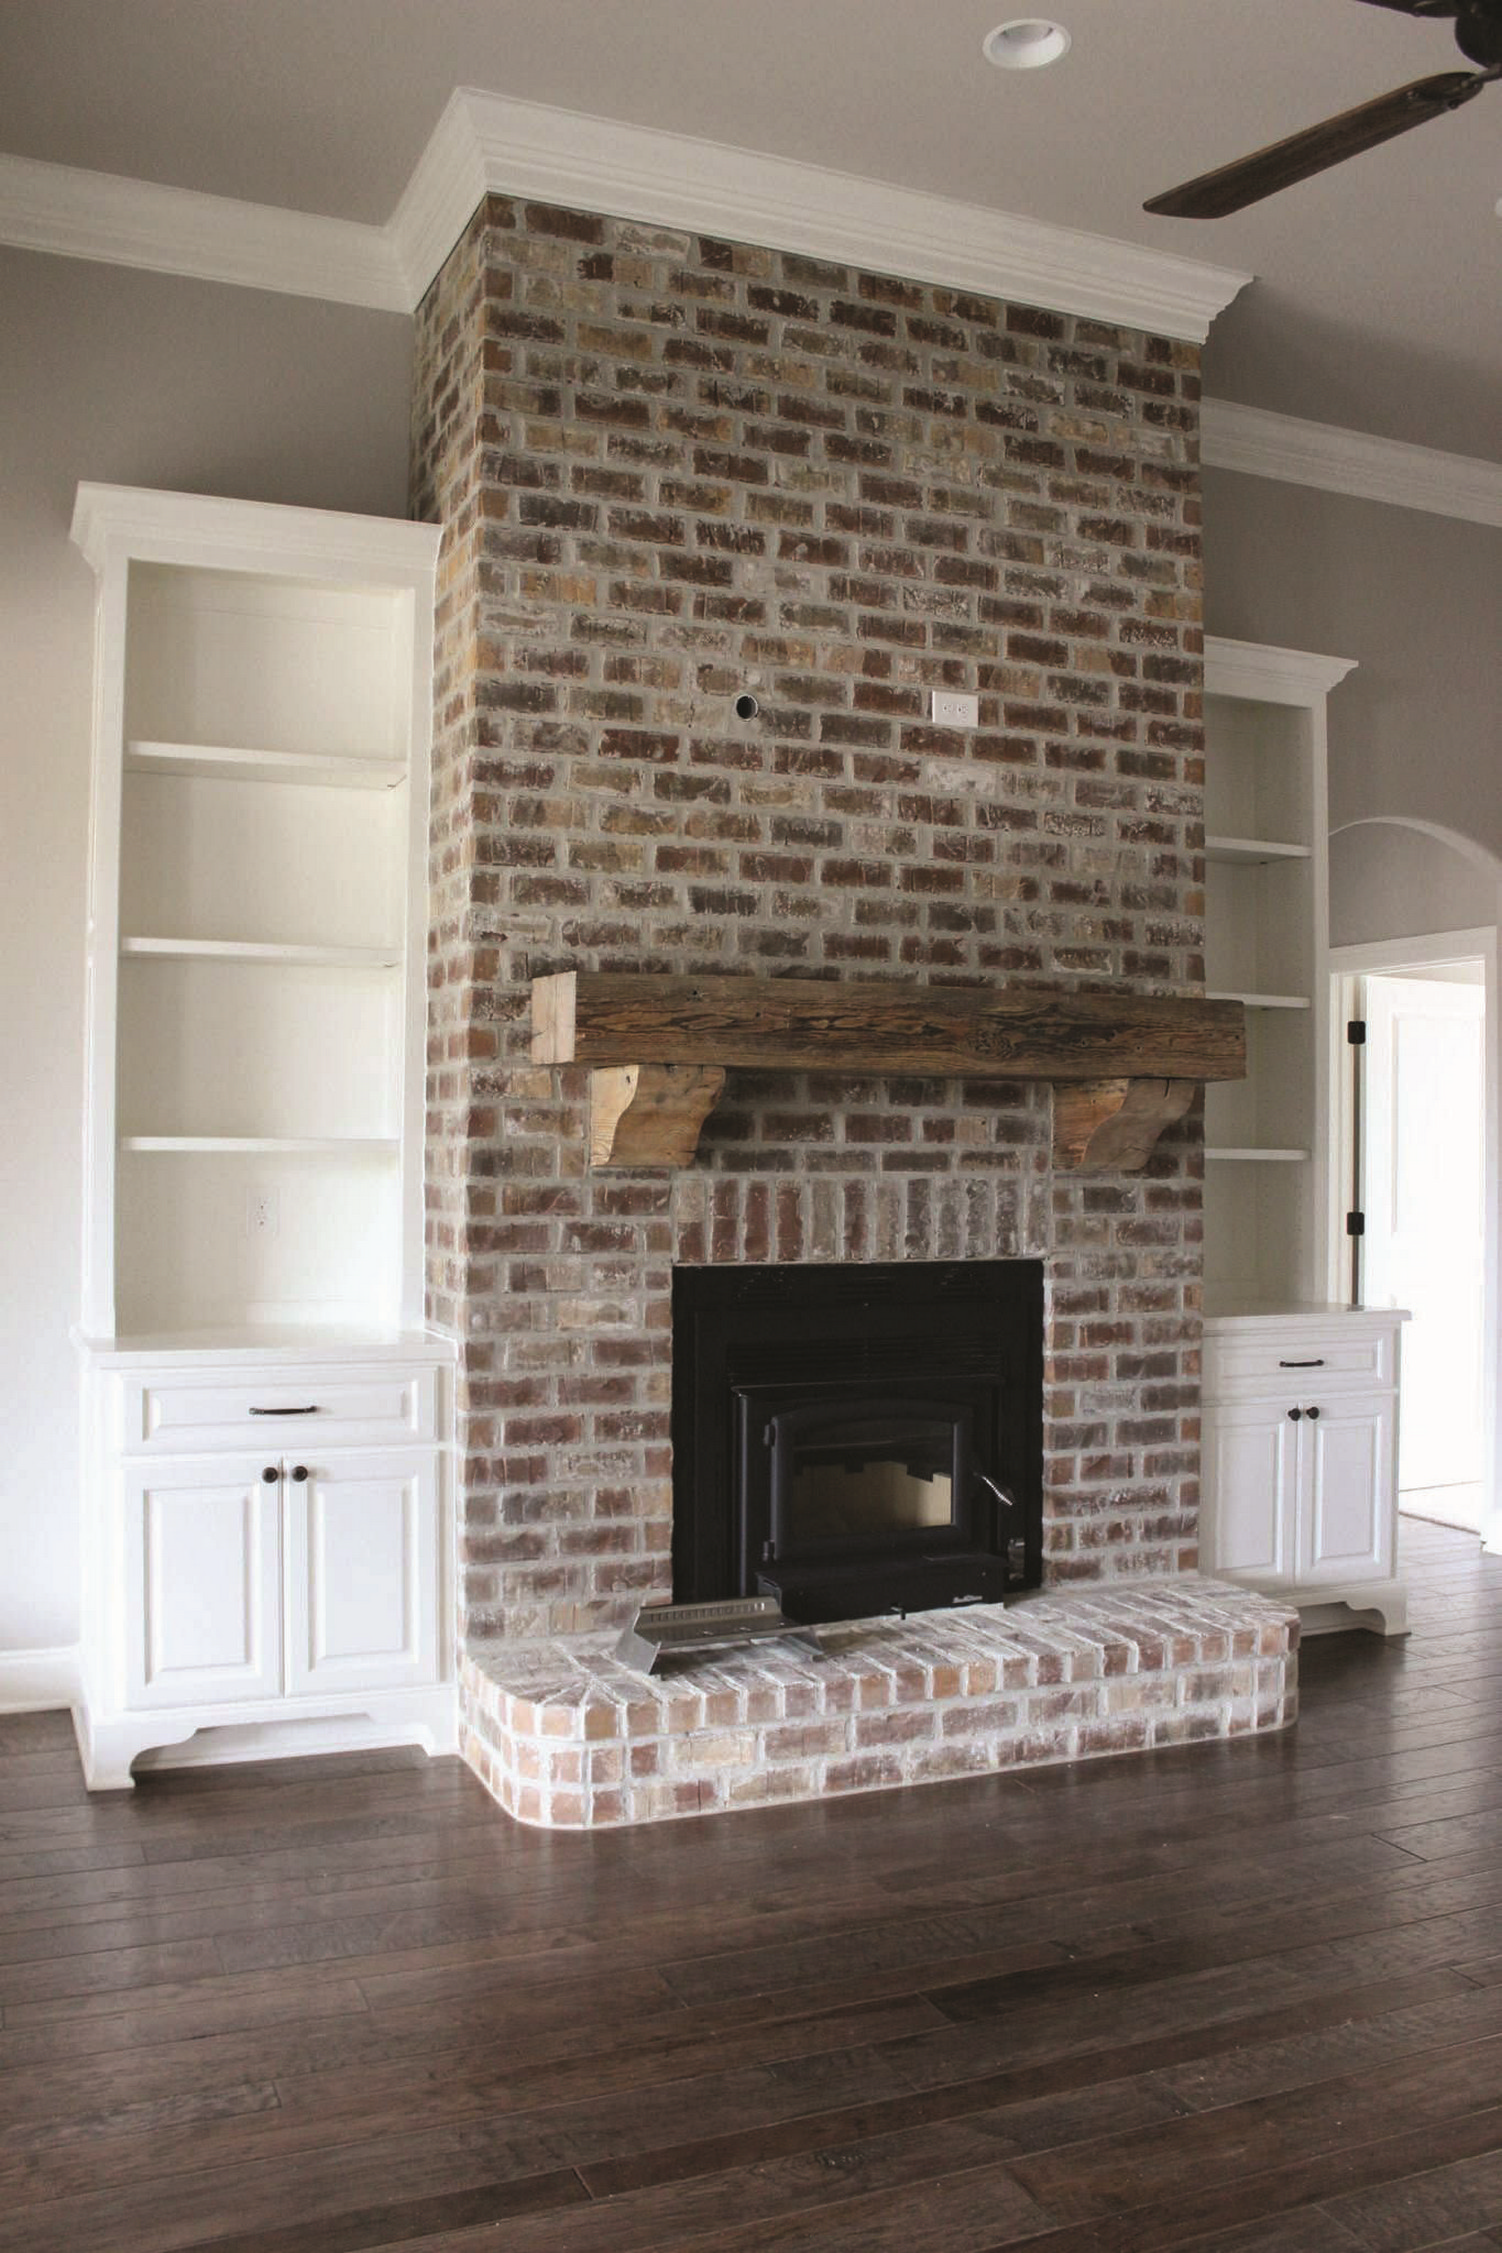 76 Stone Fireplaces The Hearth Is The Heart of The Home 60